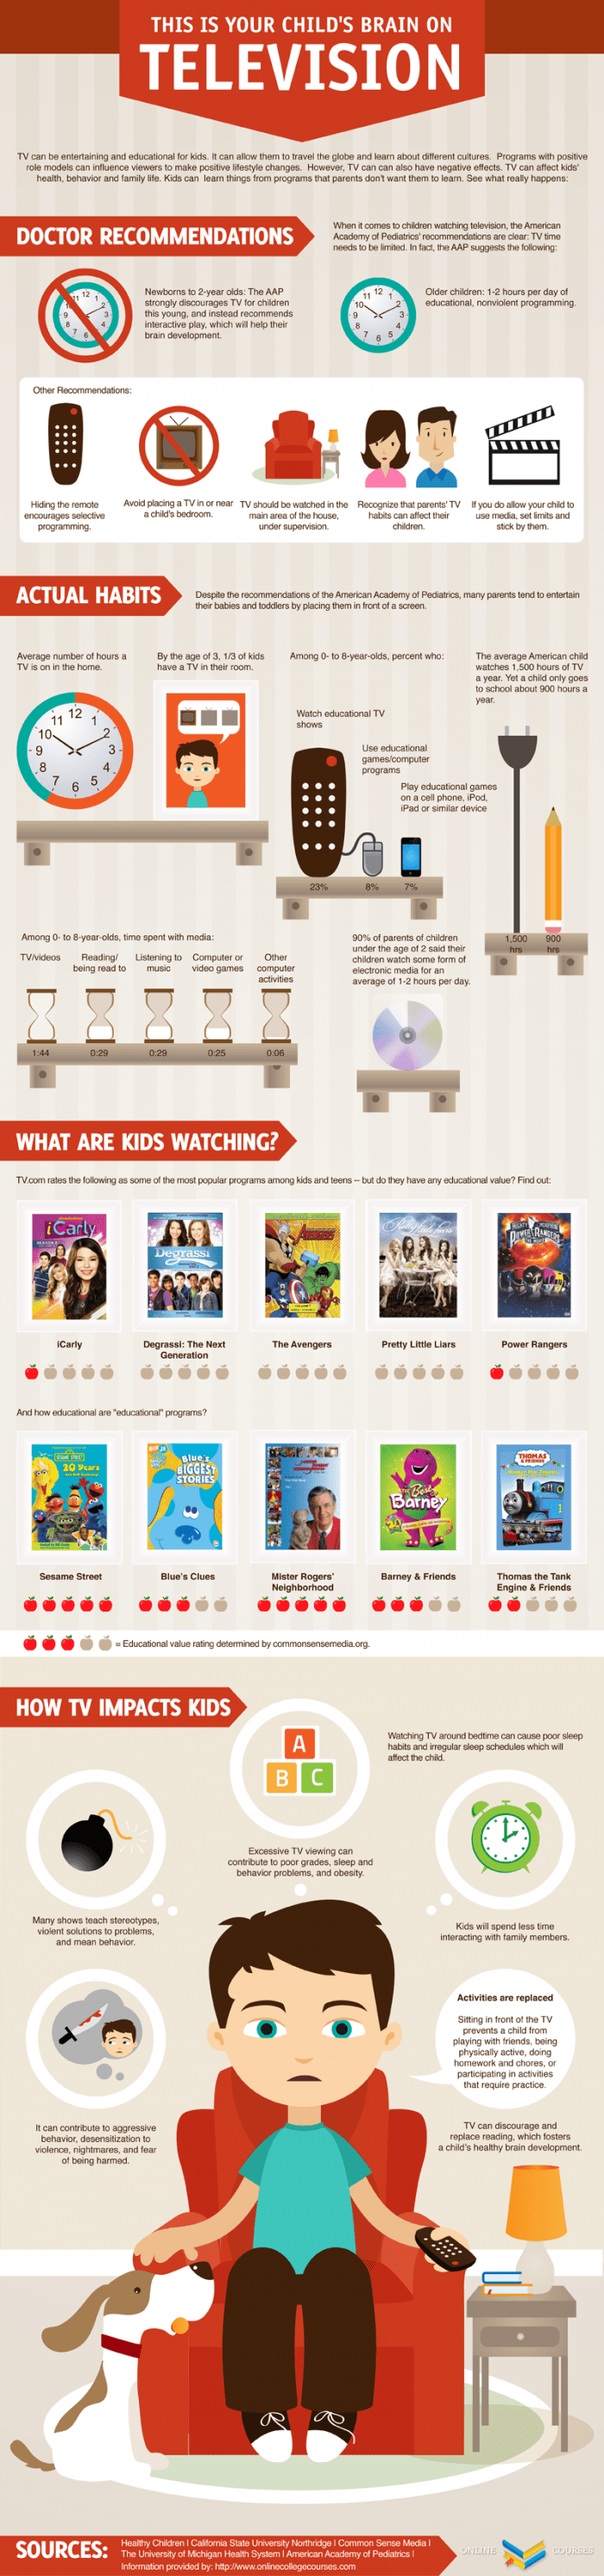 childrens brain on tv infographic